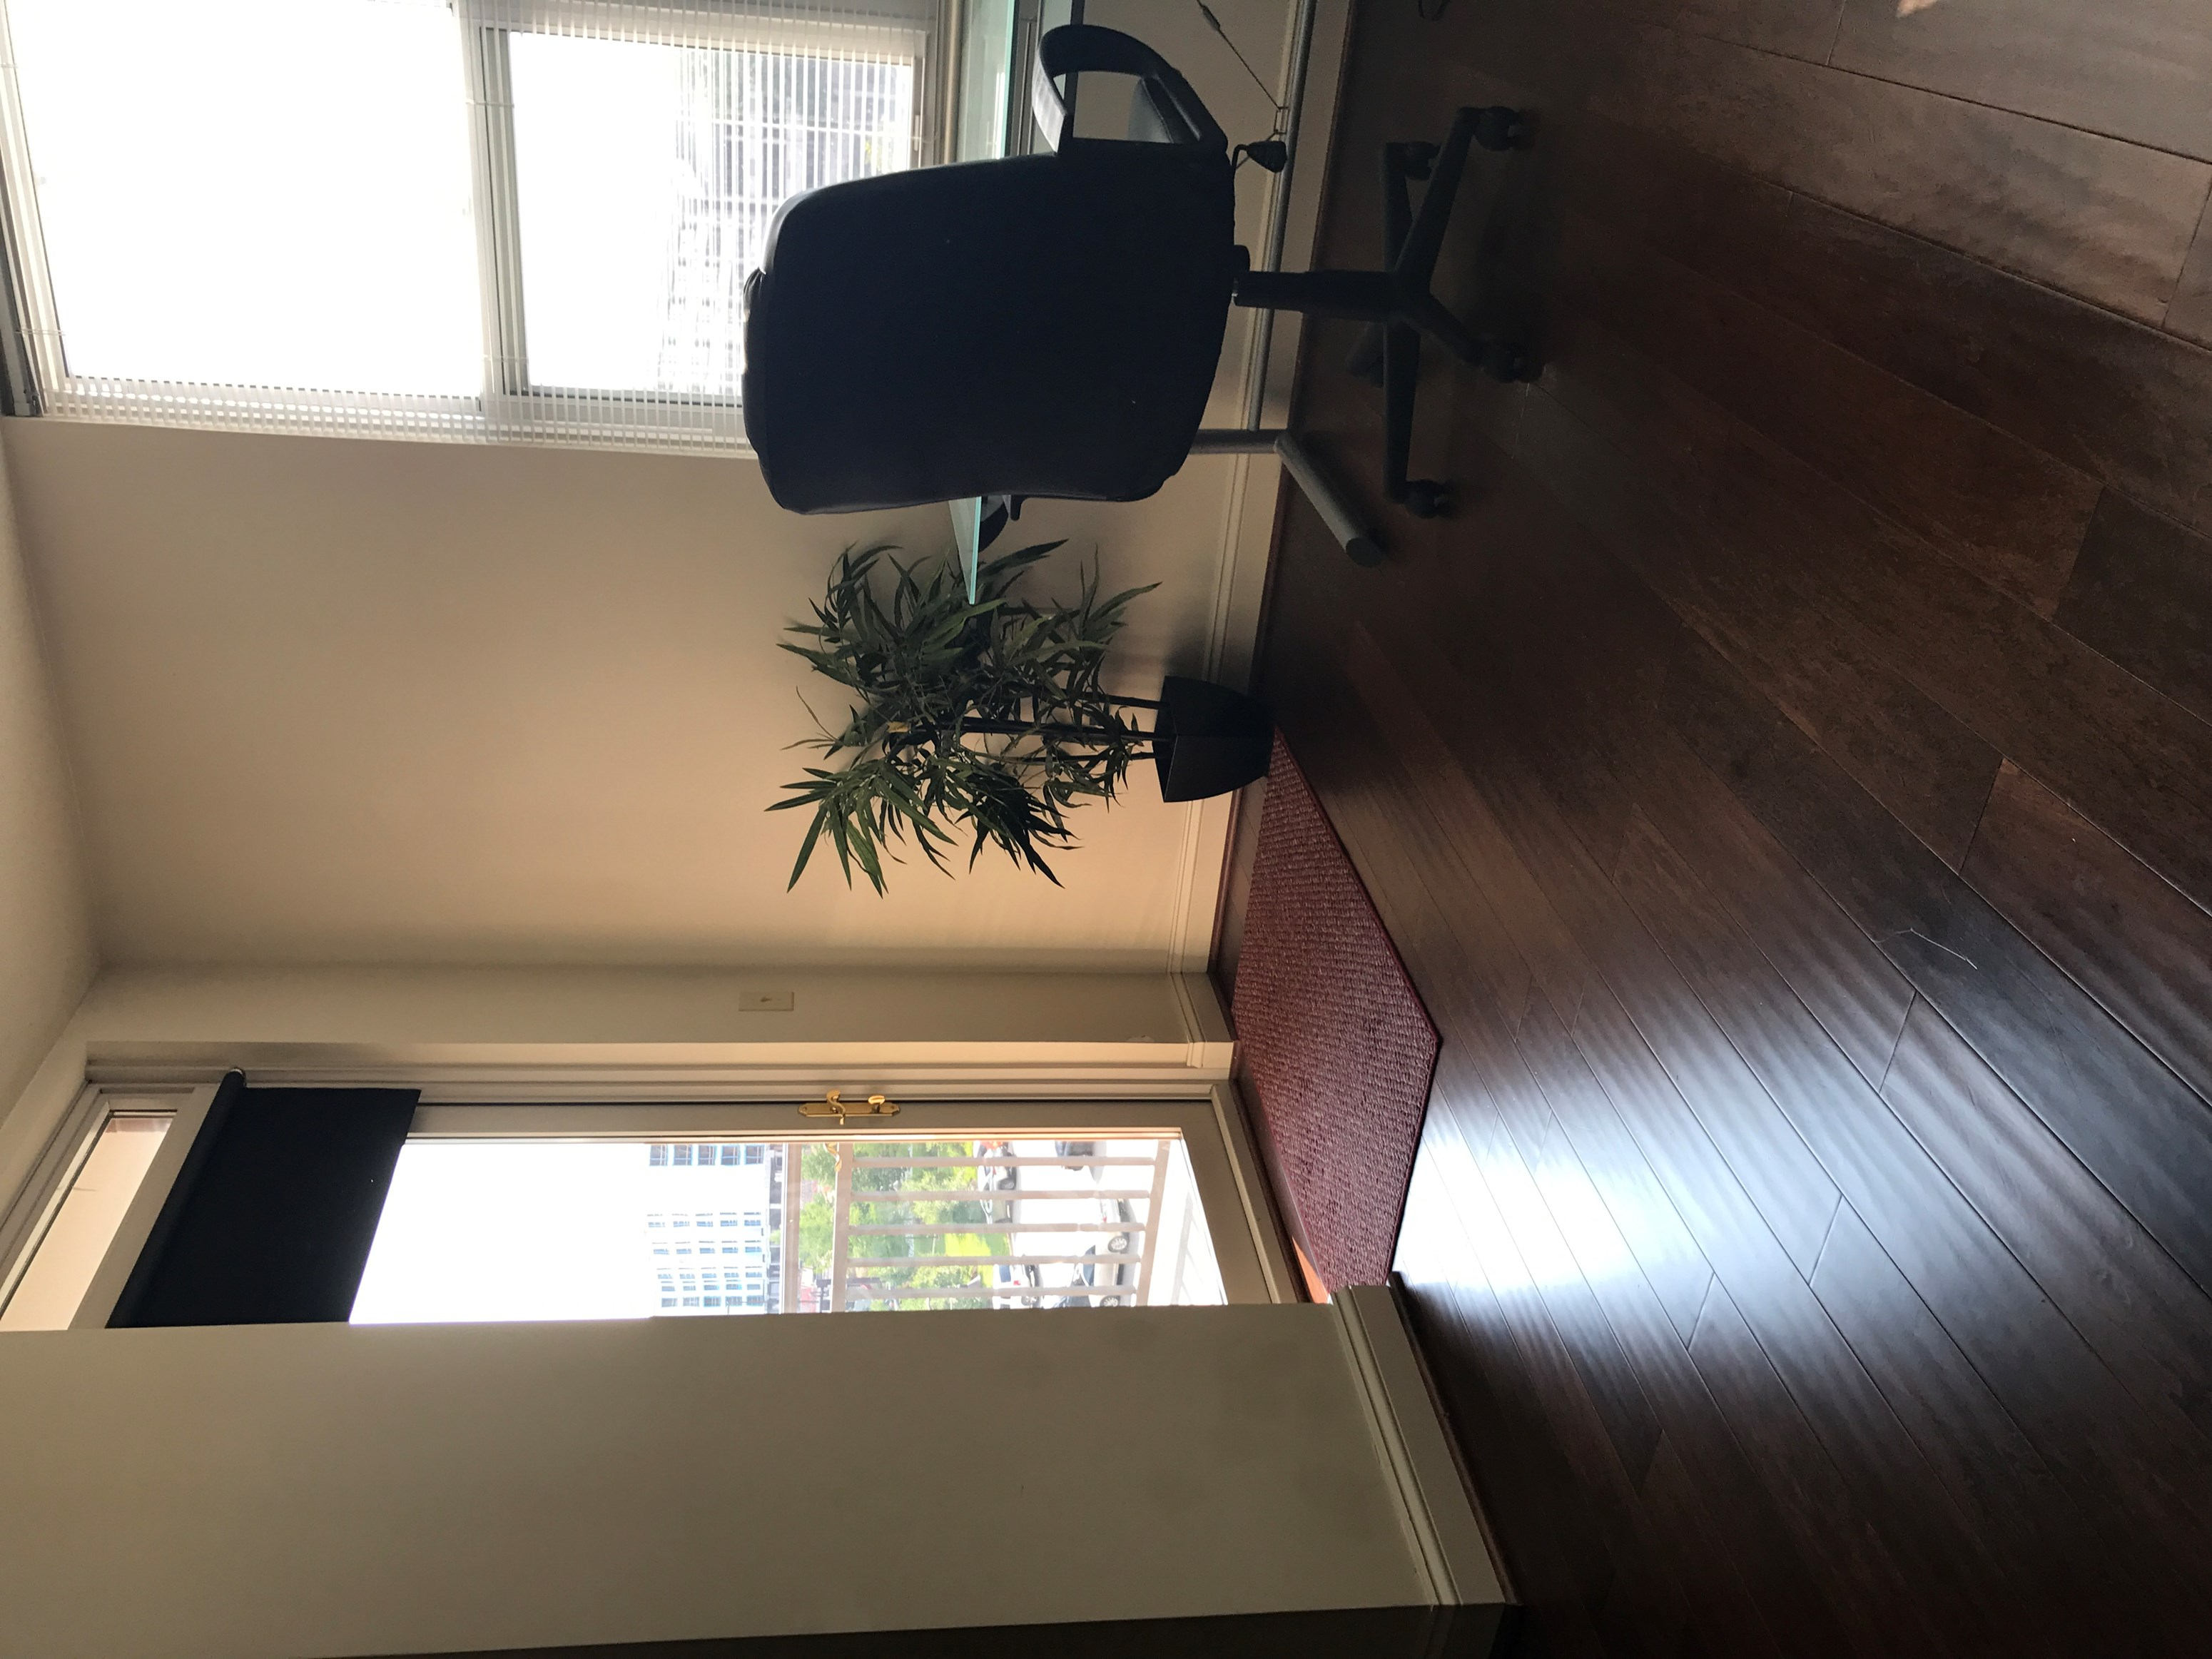 Condo Available In Reston VA All Utilities Included 3 BHK